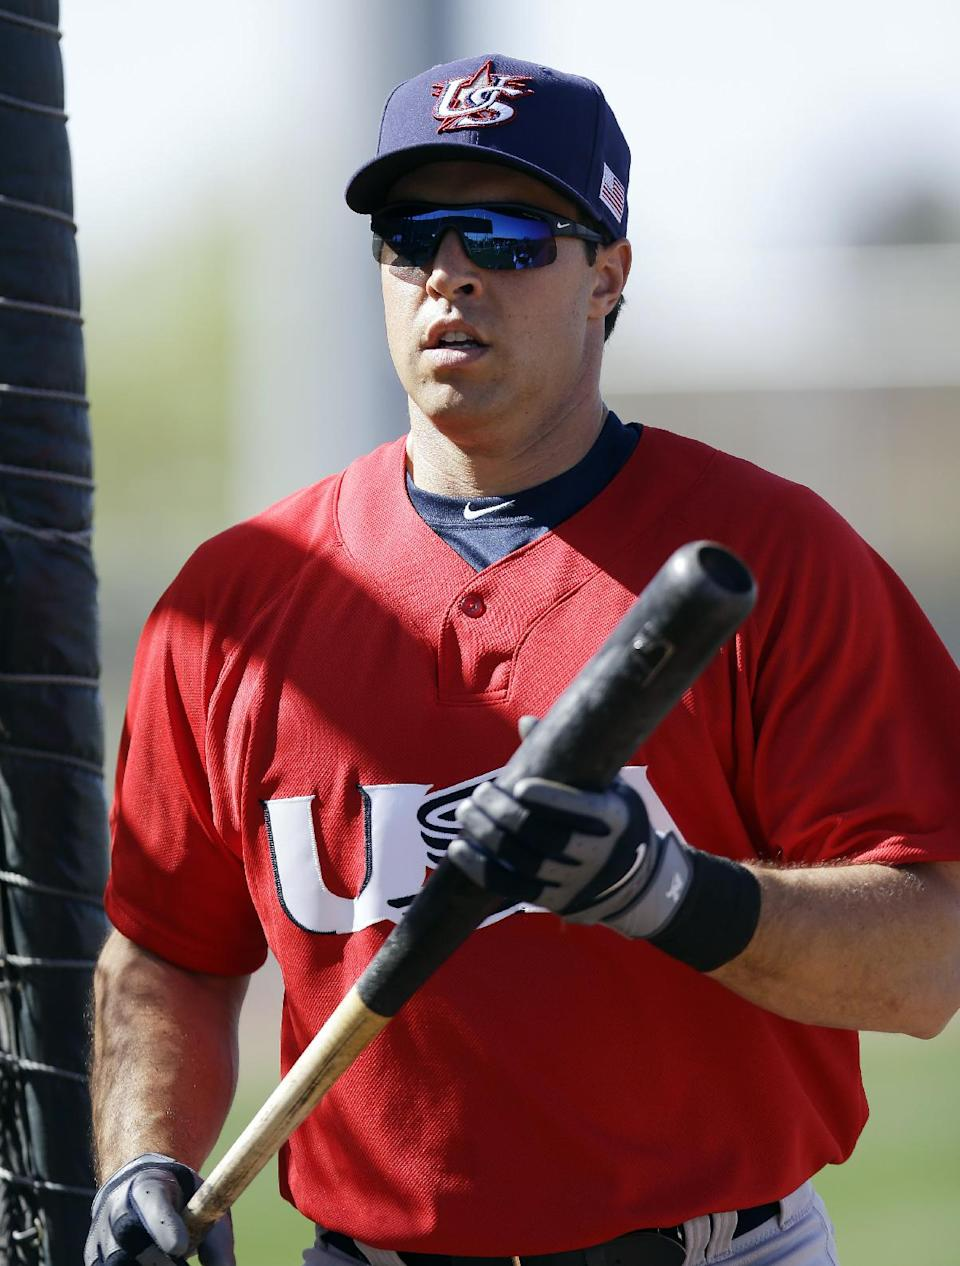 United States' Mark Teixeira takes batting practice during a training session in preparation for the World Baseball Classic on Monday, March 4, 2013 in Scottsdale, Ariz. The United States is scheduled to face Mexico in a first-round game on Friday in Phoenix. (AP Photo/Marcio Jose Sanchez)